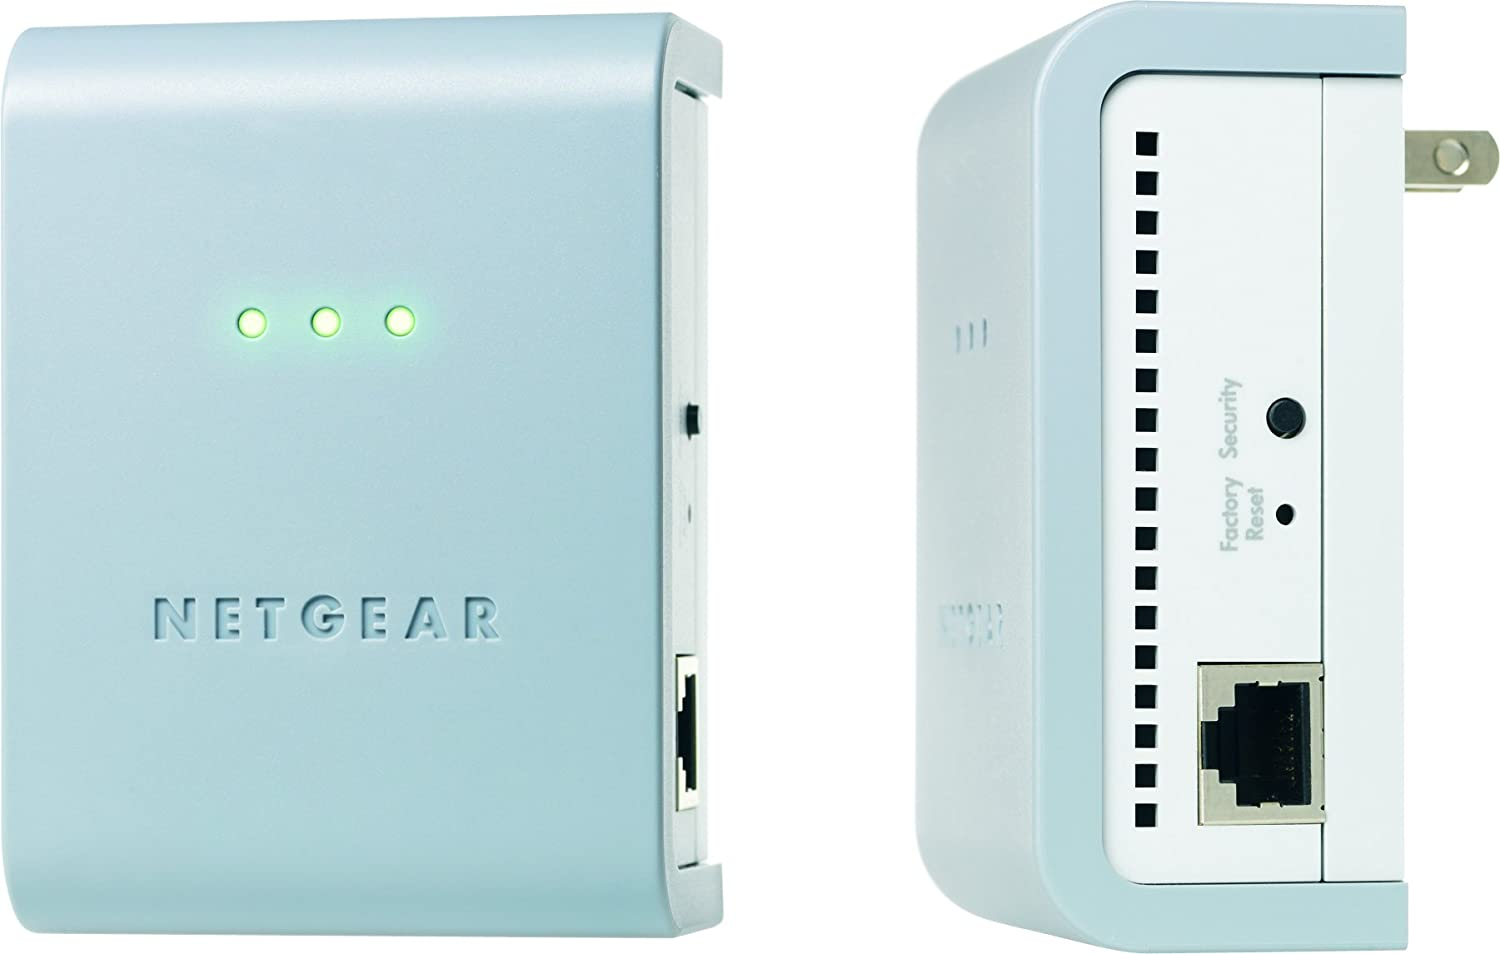 Top Five How To Connect Netgear Wifi Adapter To Xbox 360